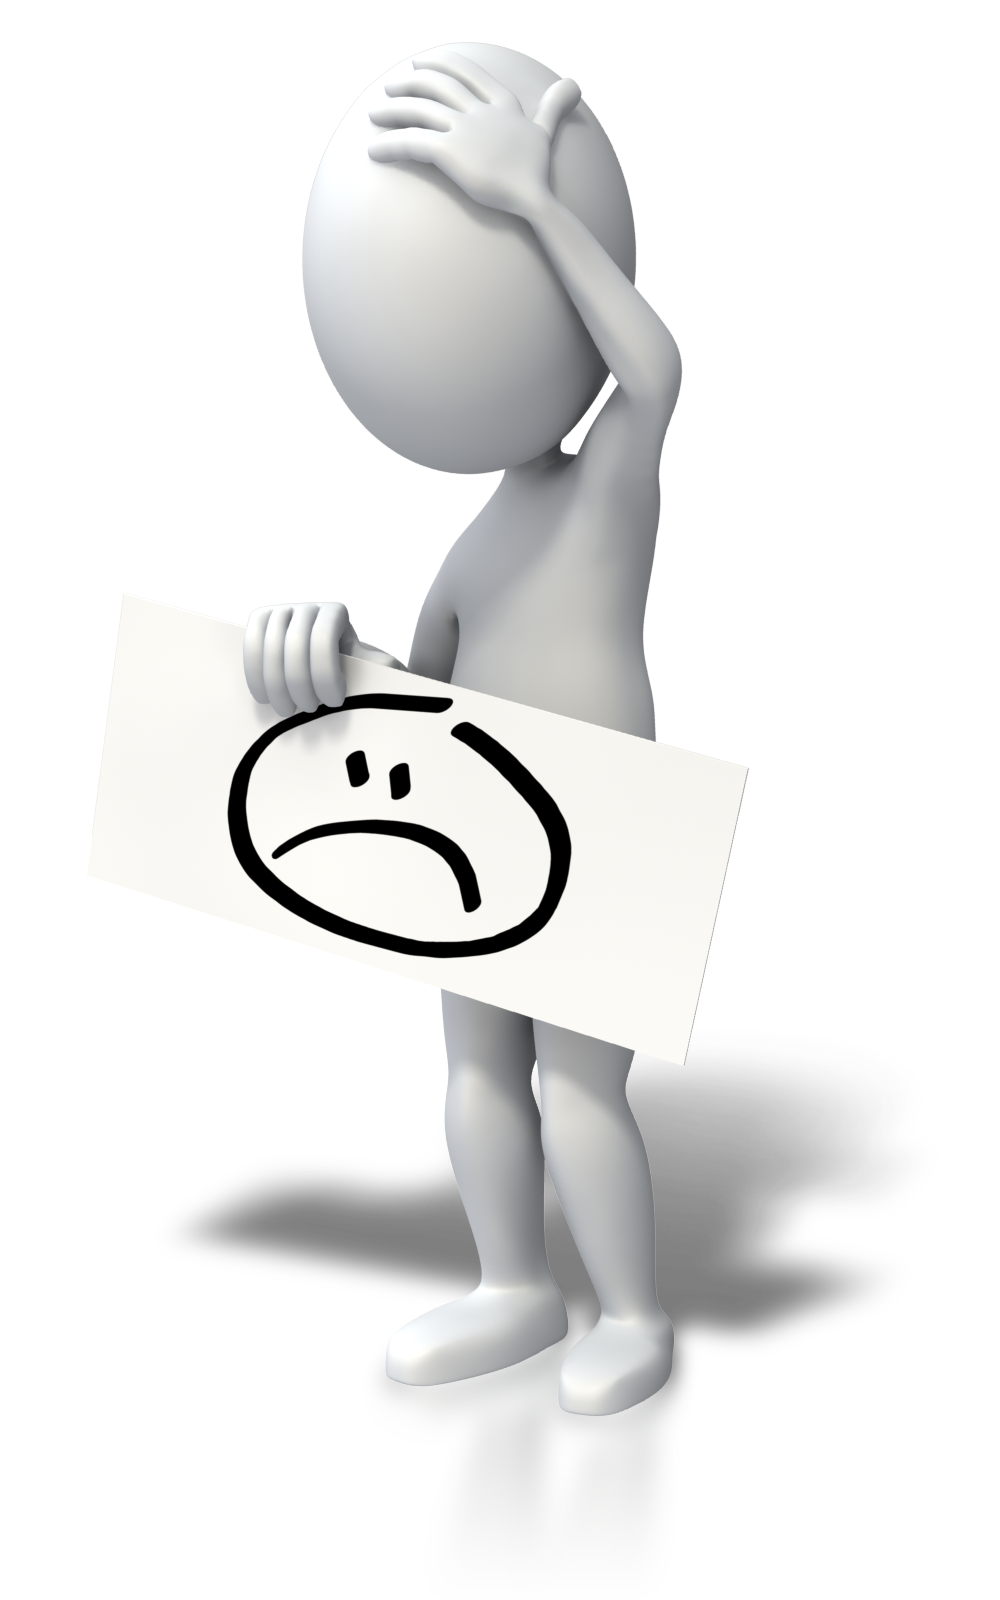 Employee clipart sad. Triste png hombrecitos pinterest